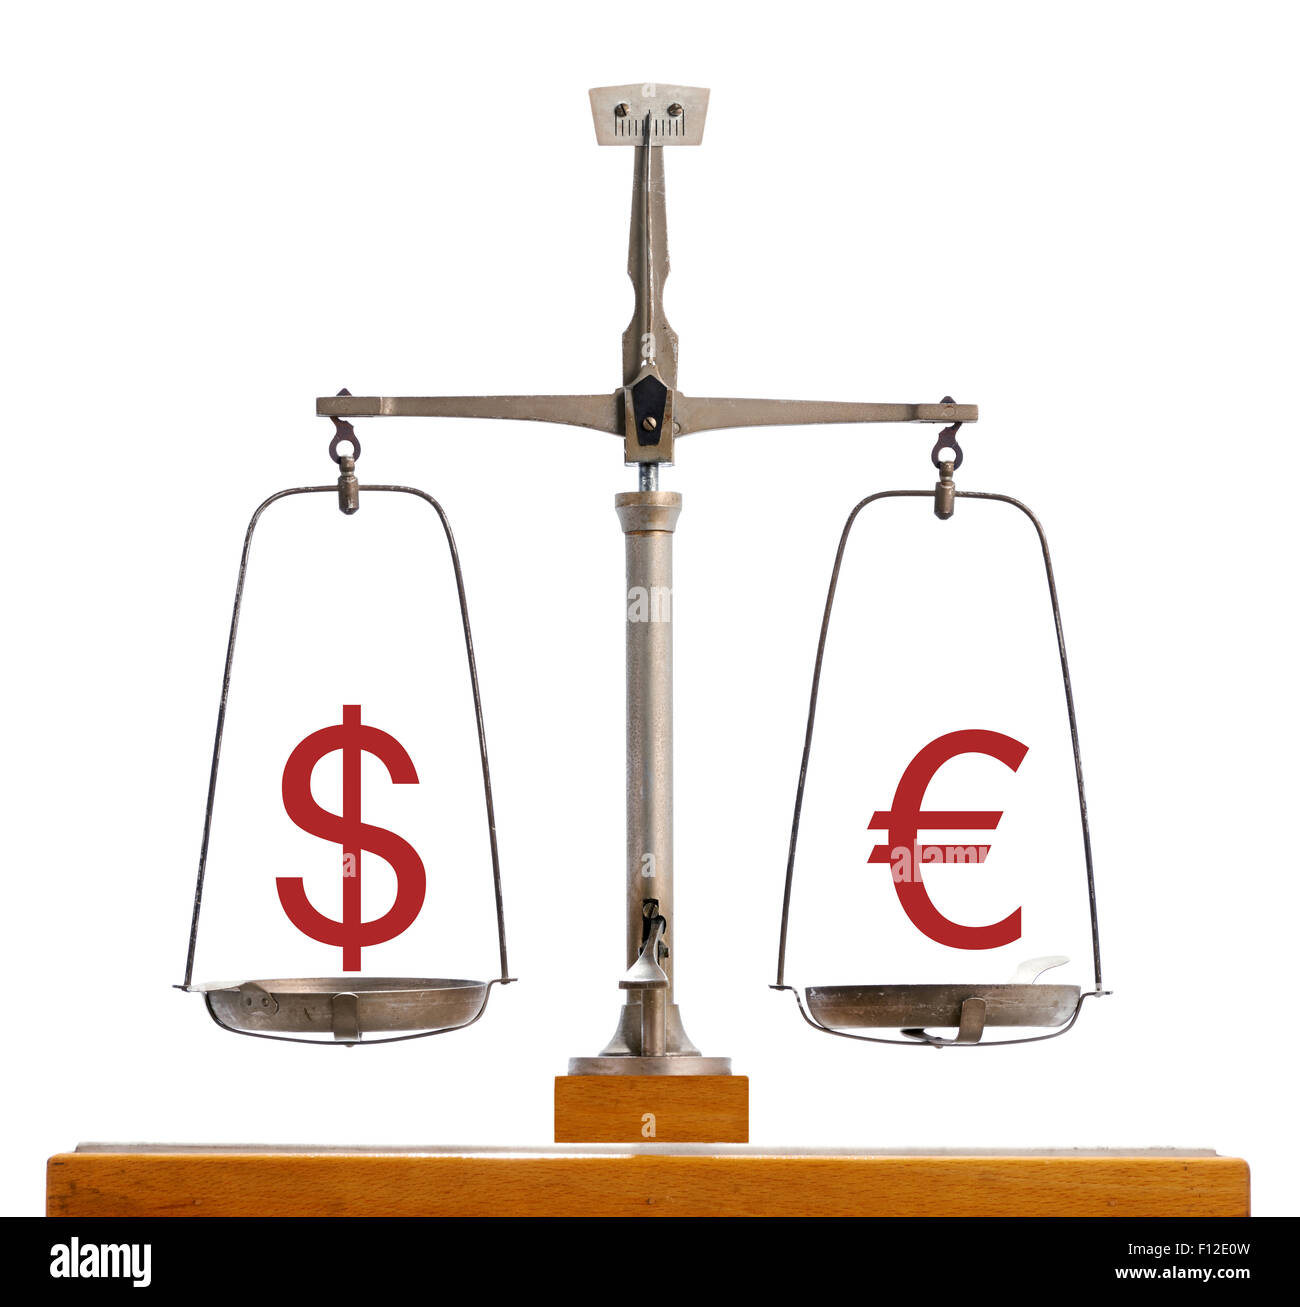 Dollar Euro currency scale showing the value of the two currencies in equilibrium - Stock Image